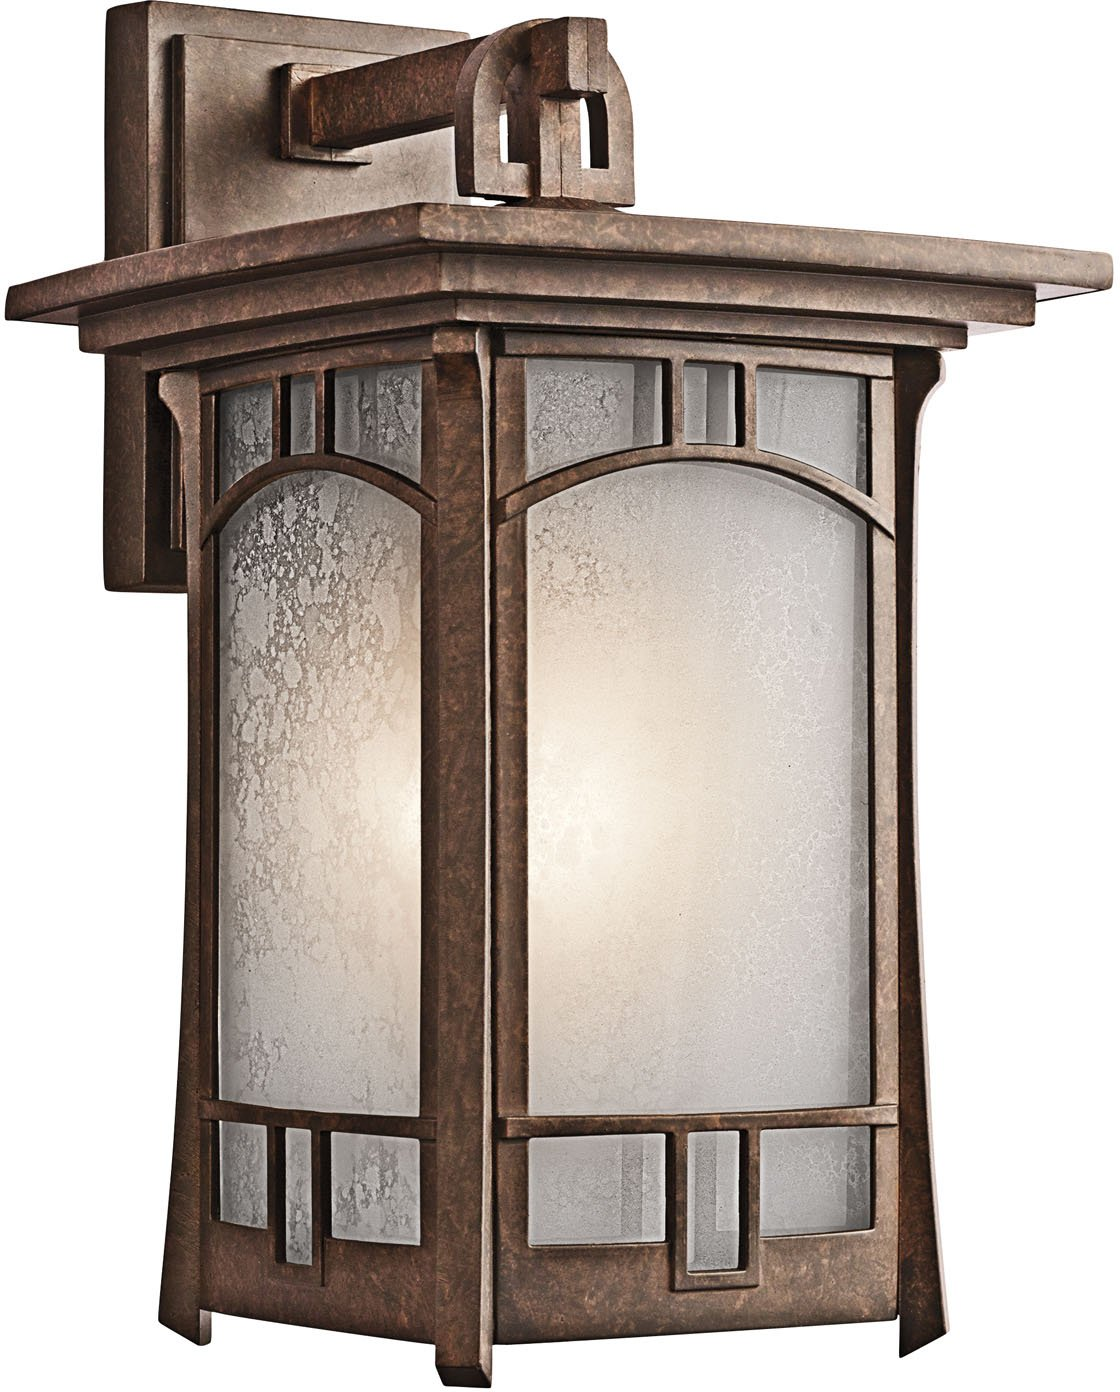 Kichler 49451agz one light outdoor wall mount wall porch lights kichler 49451agz one light outdoor wall mount wall porch lights amazon amipublicfo Choice Image